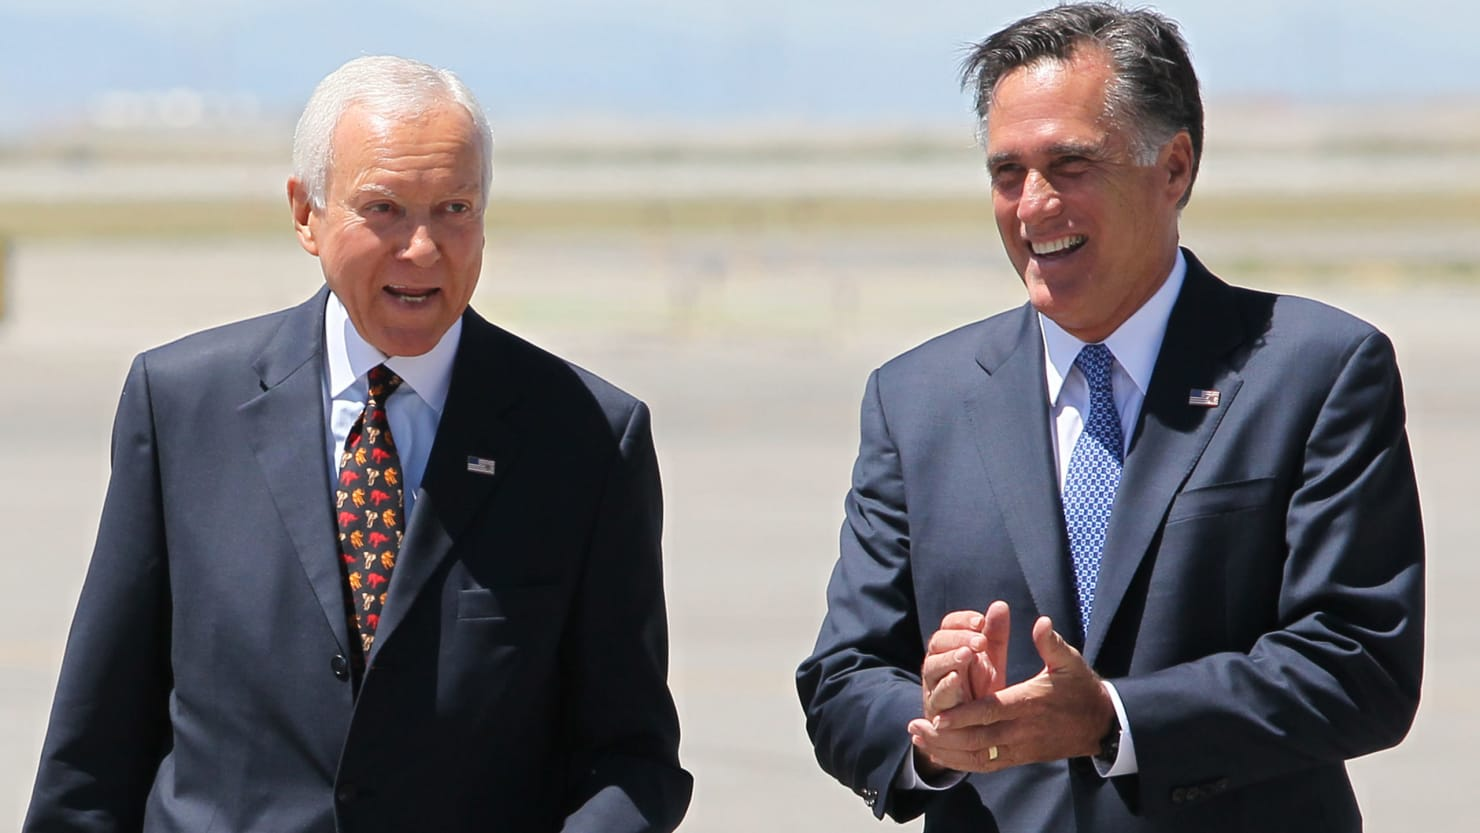 Image result for photos of Mitt Romney in senate